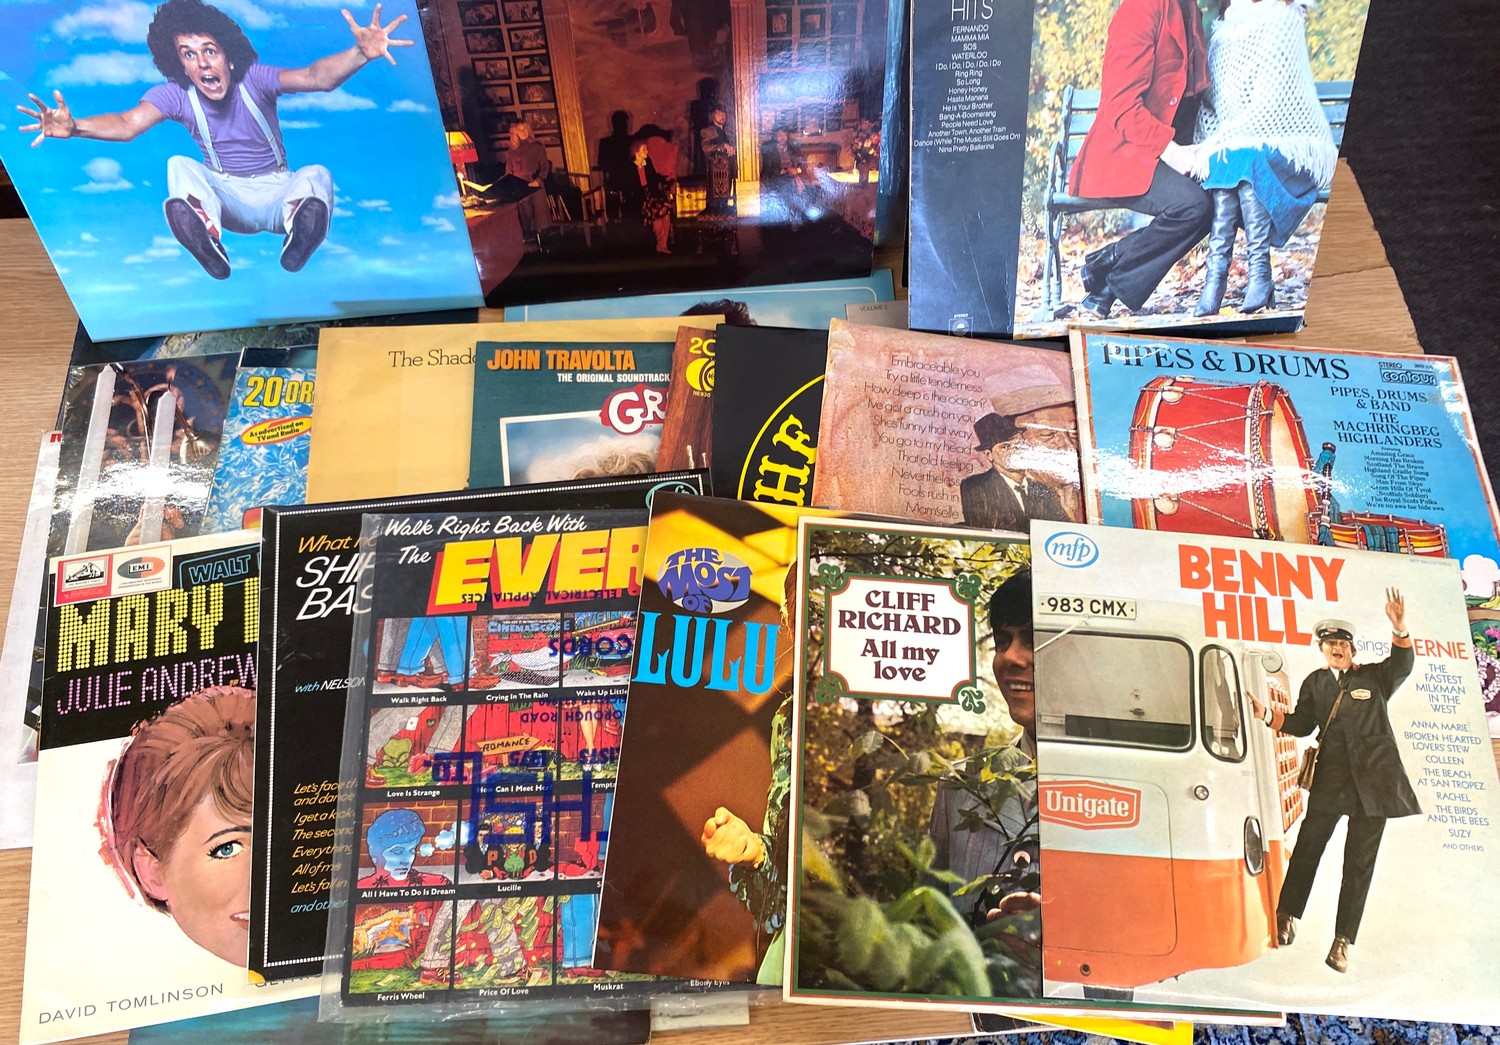 Selection of assorted records includes Elvis, Abba, Leo Sayer etc